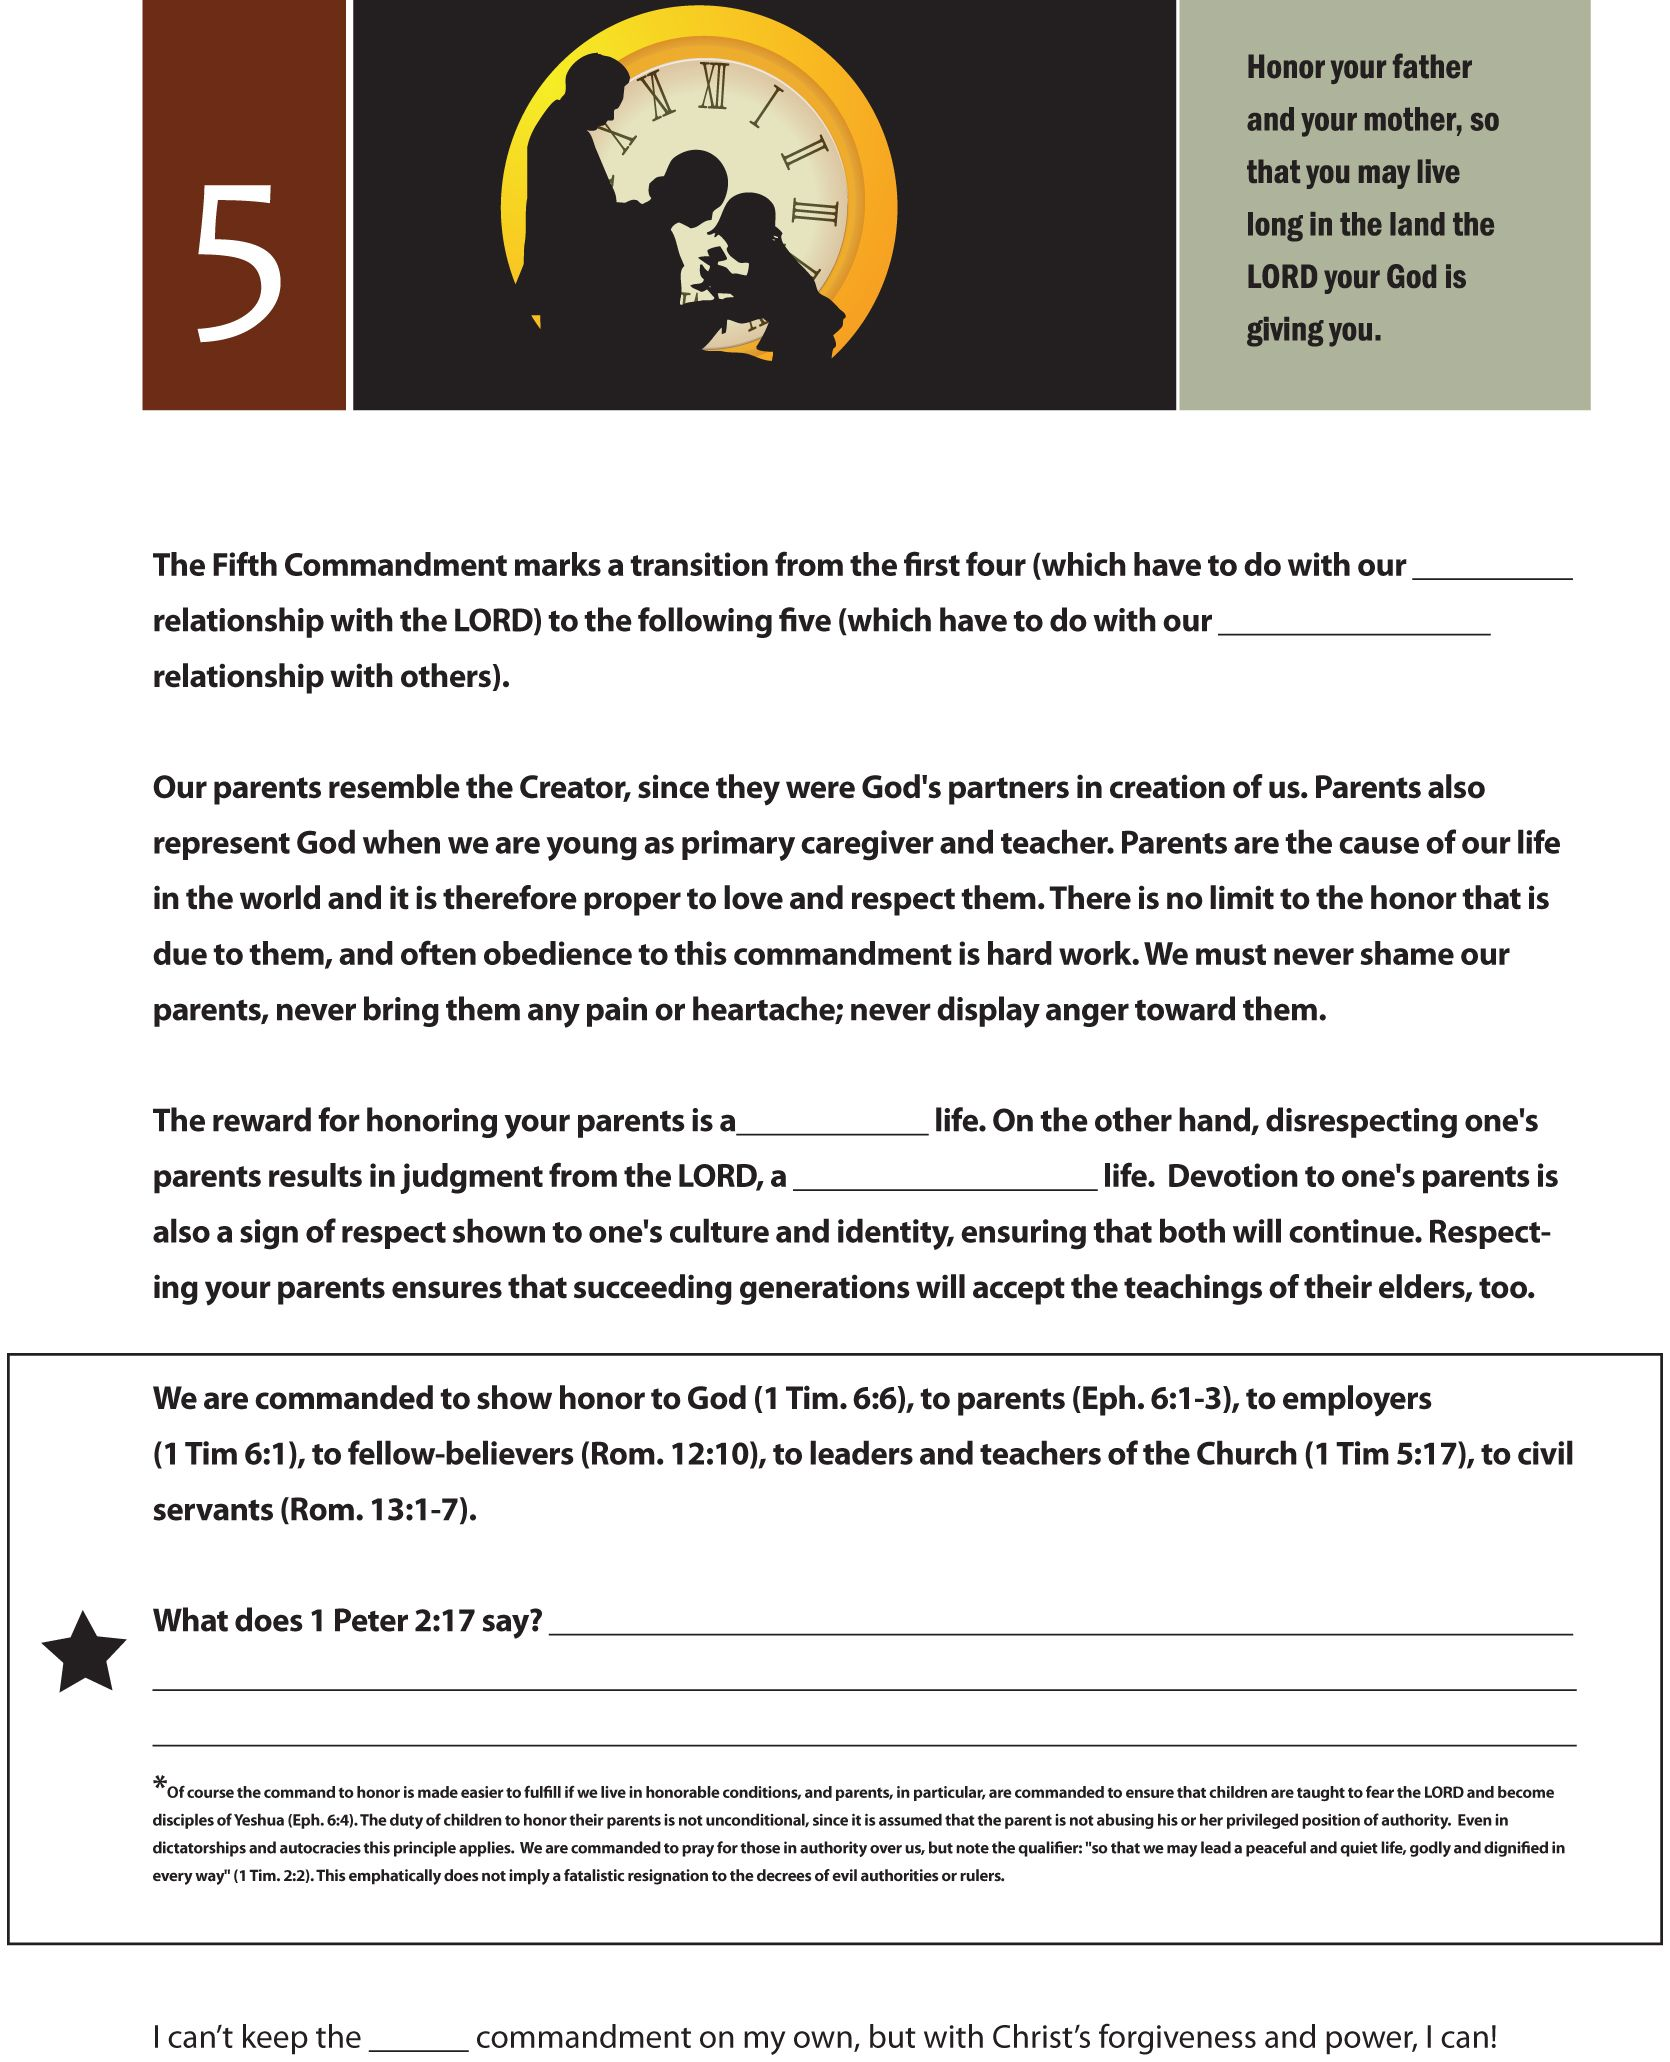 Worksheet To Teach The Fifth Of The 10 Commandments Honor